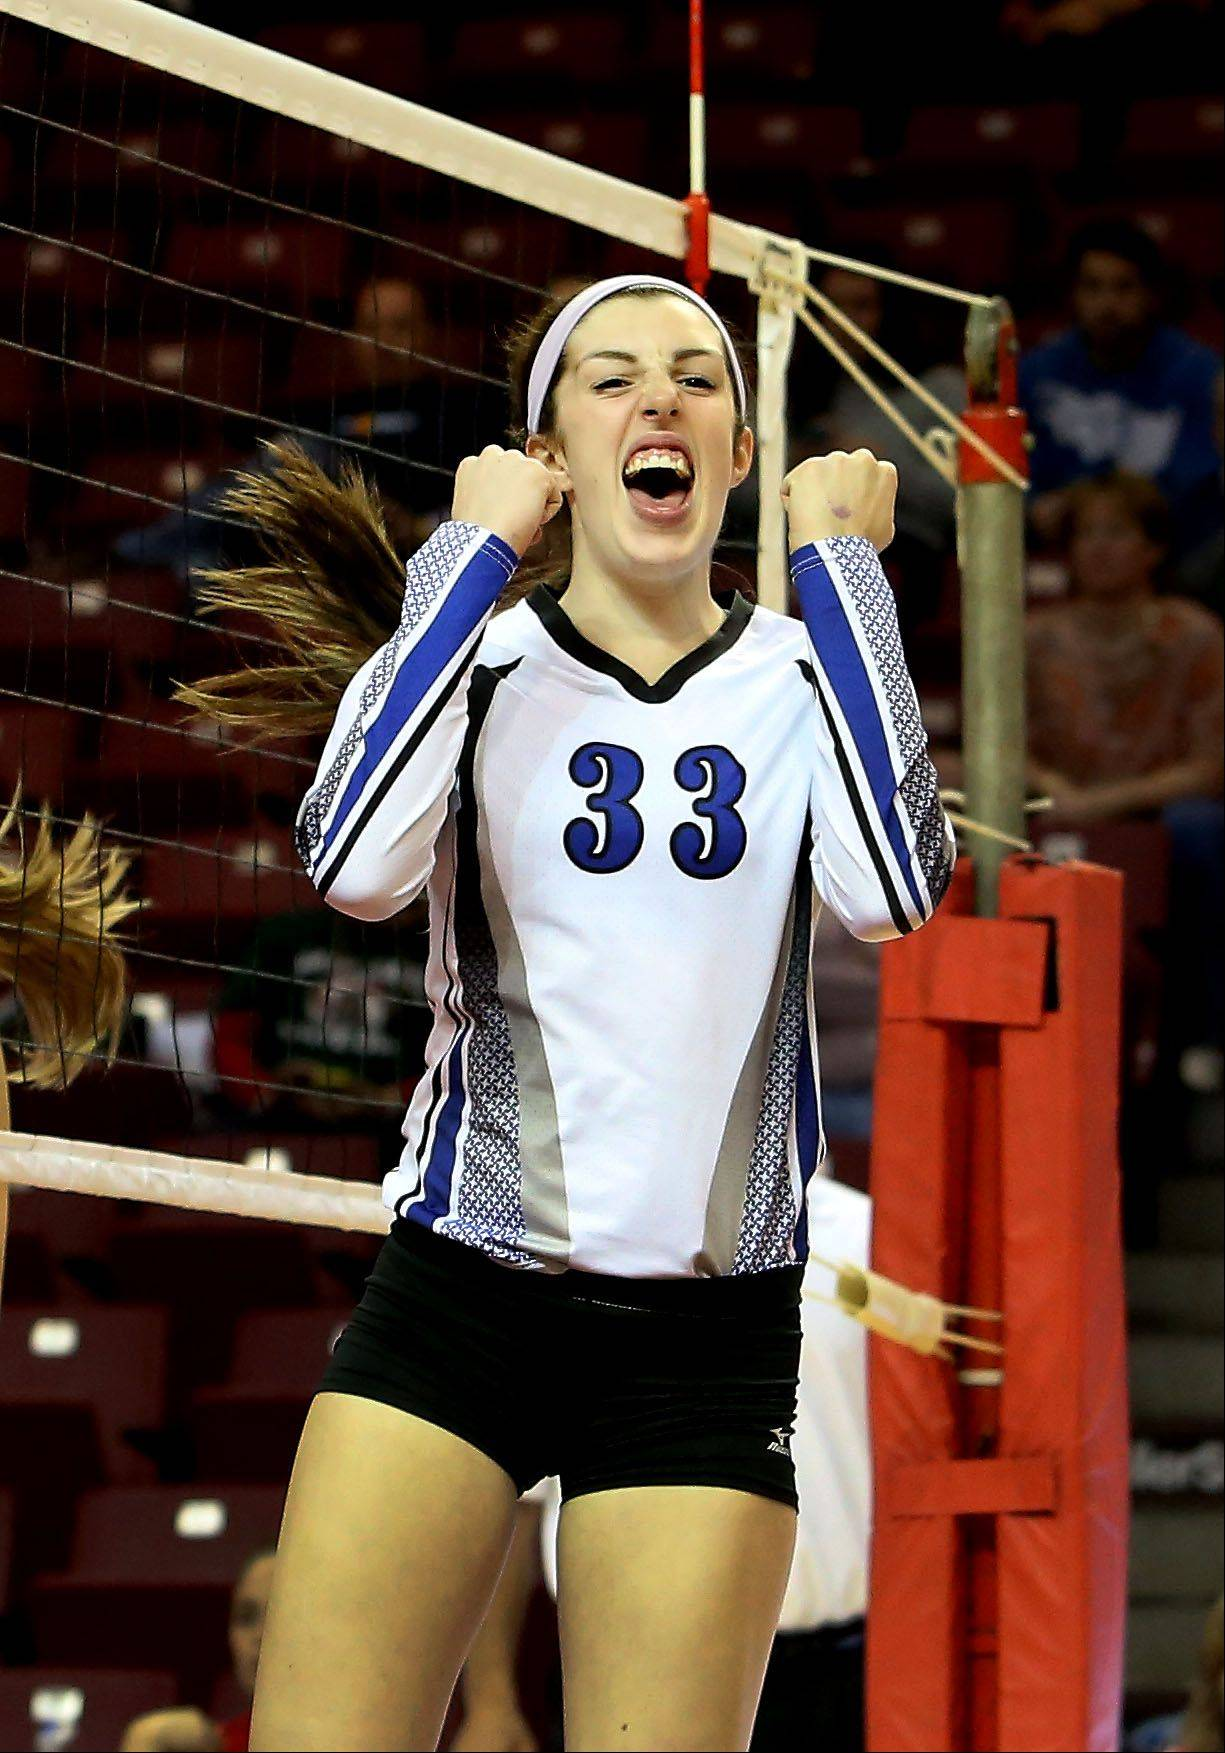 Laney Malloy of St. Francis reacts after winning a point over Breese Central in Class 3A state girls volleyball action on Friday in Normal.